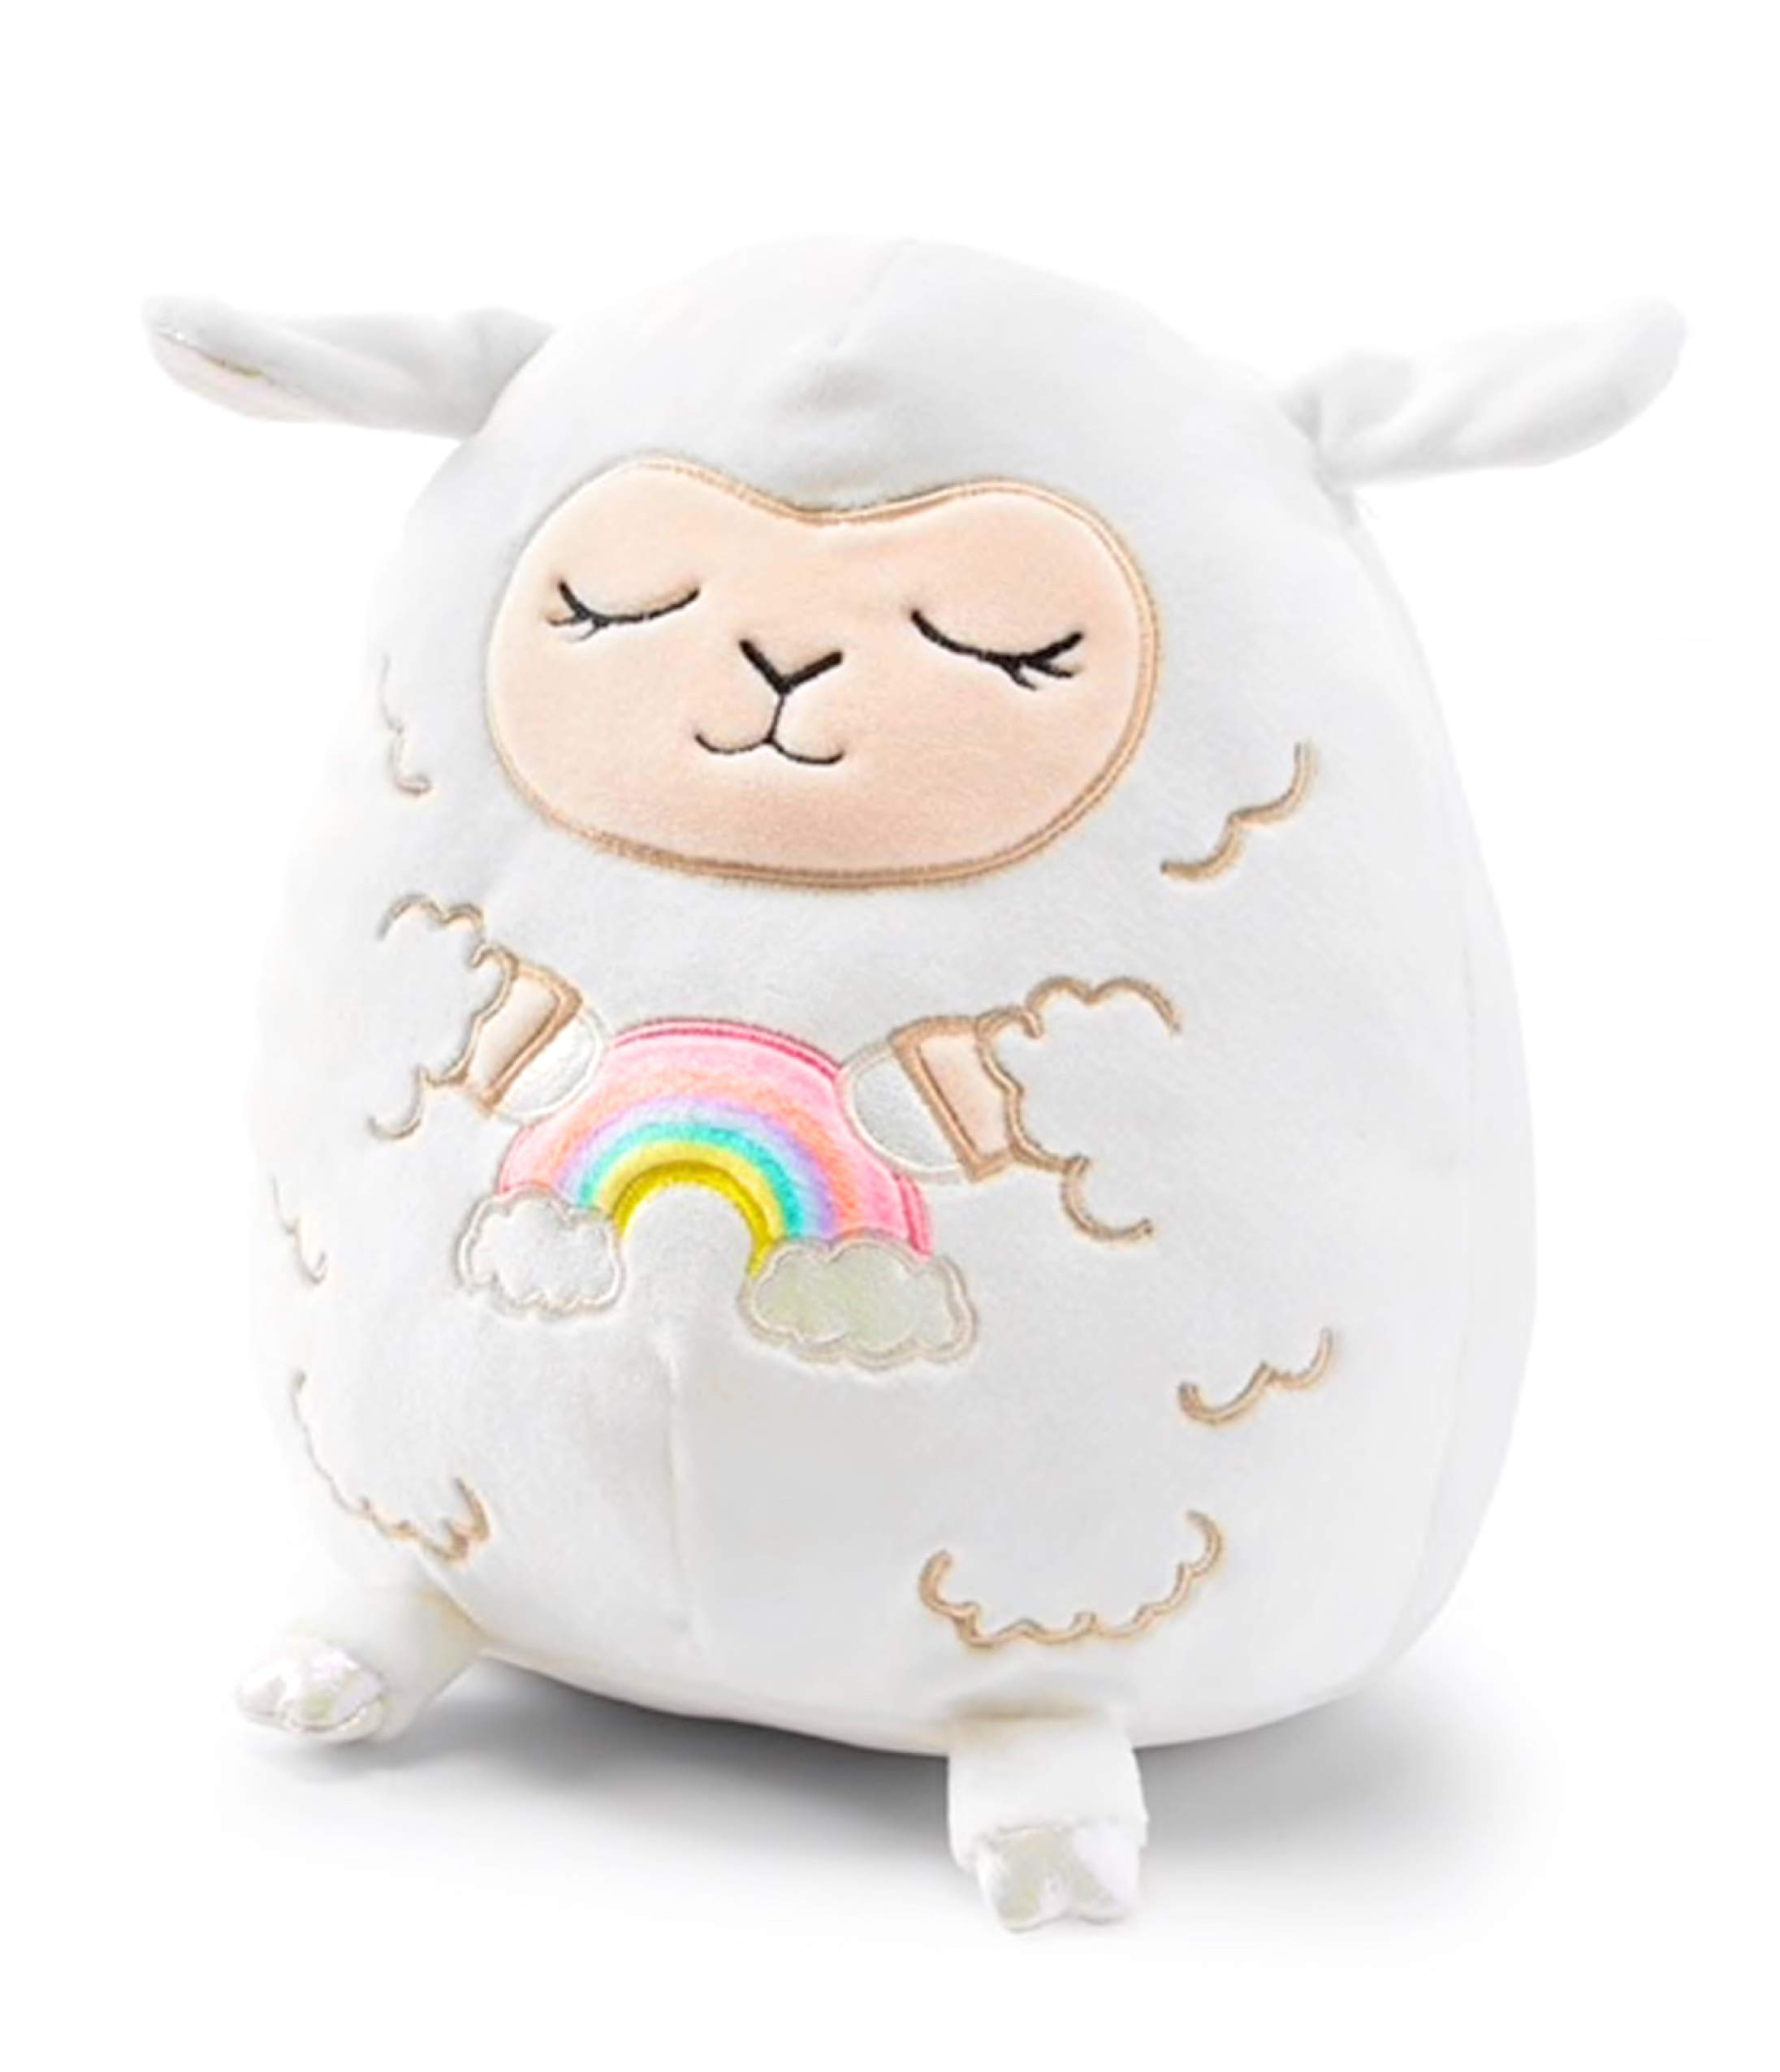 Squishmallows Justice Exclusive Large 16 Inch Blossom The Baby Lamb Vanilla Bean Scented Kellytoy Super Soft Plush Pillow Stuffed Animal